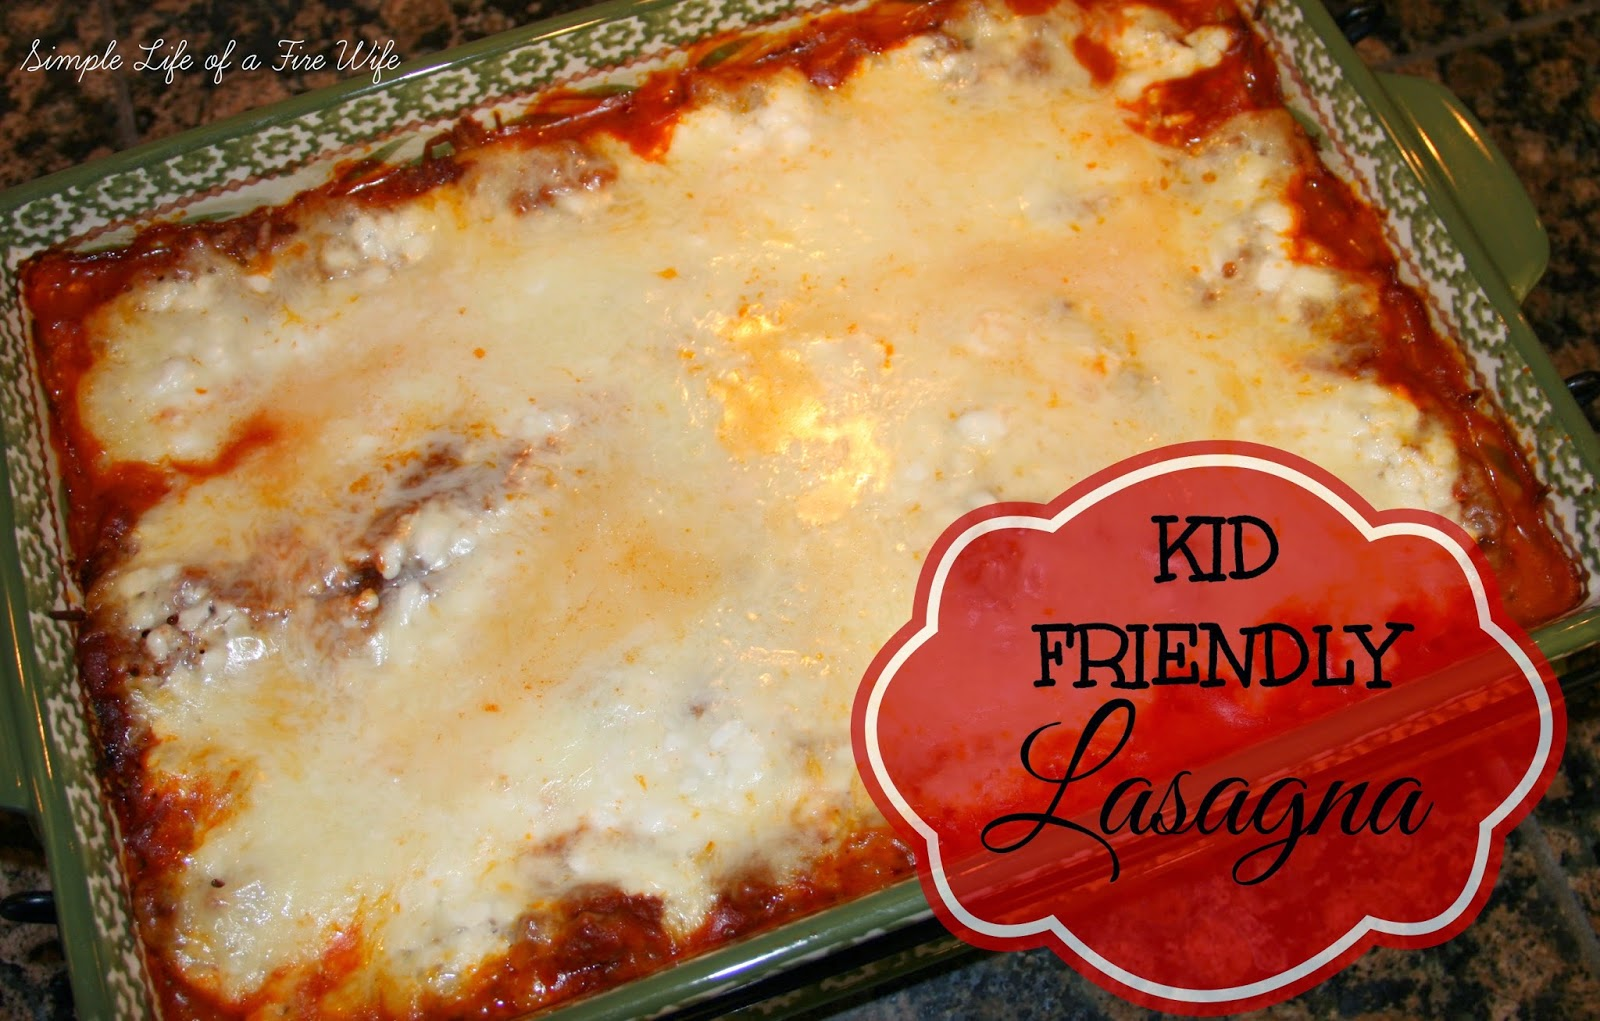 Simple life of a fire wife kid friendly lasagna for Better homes and gardens lasagna